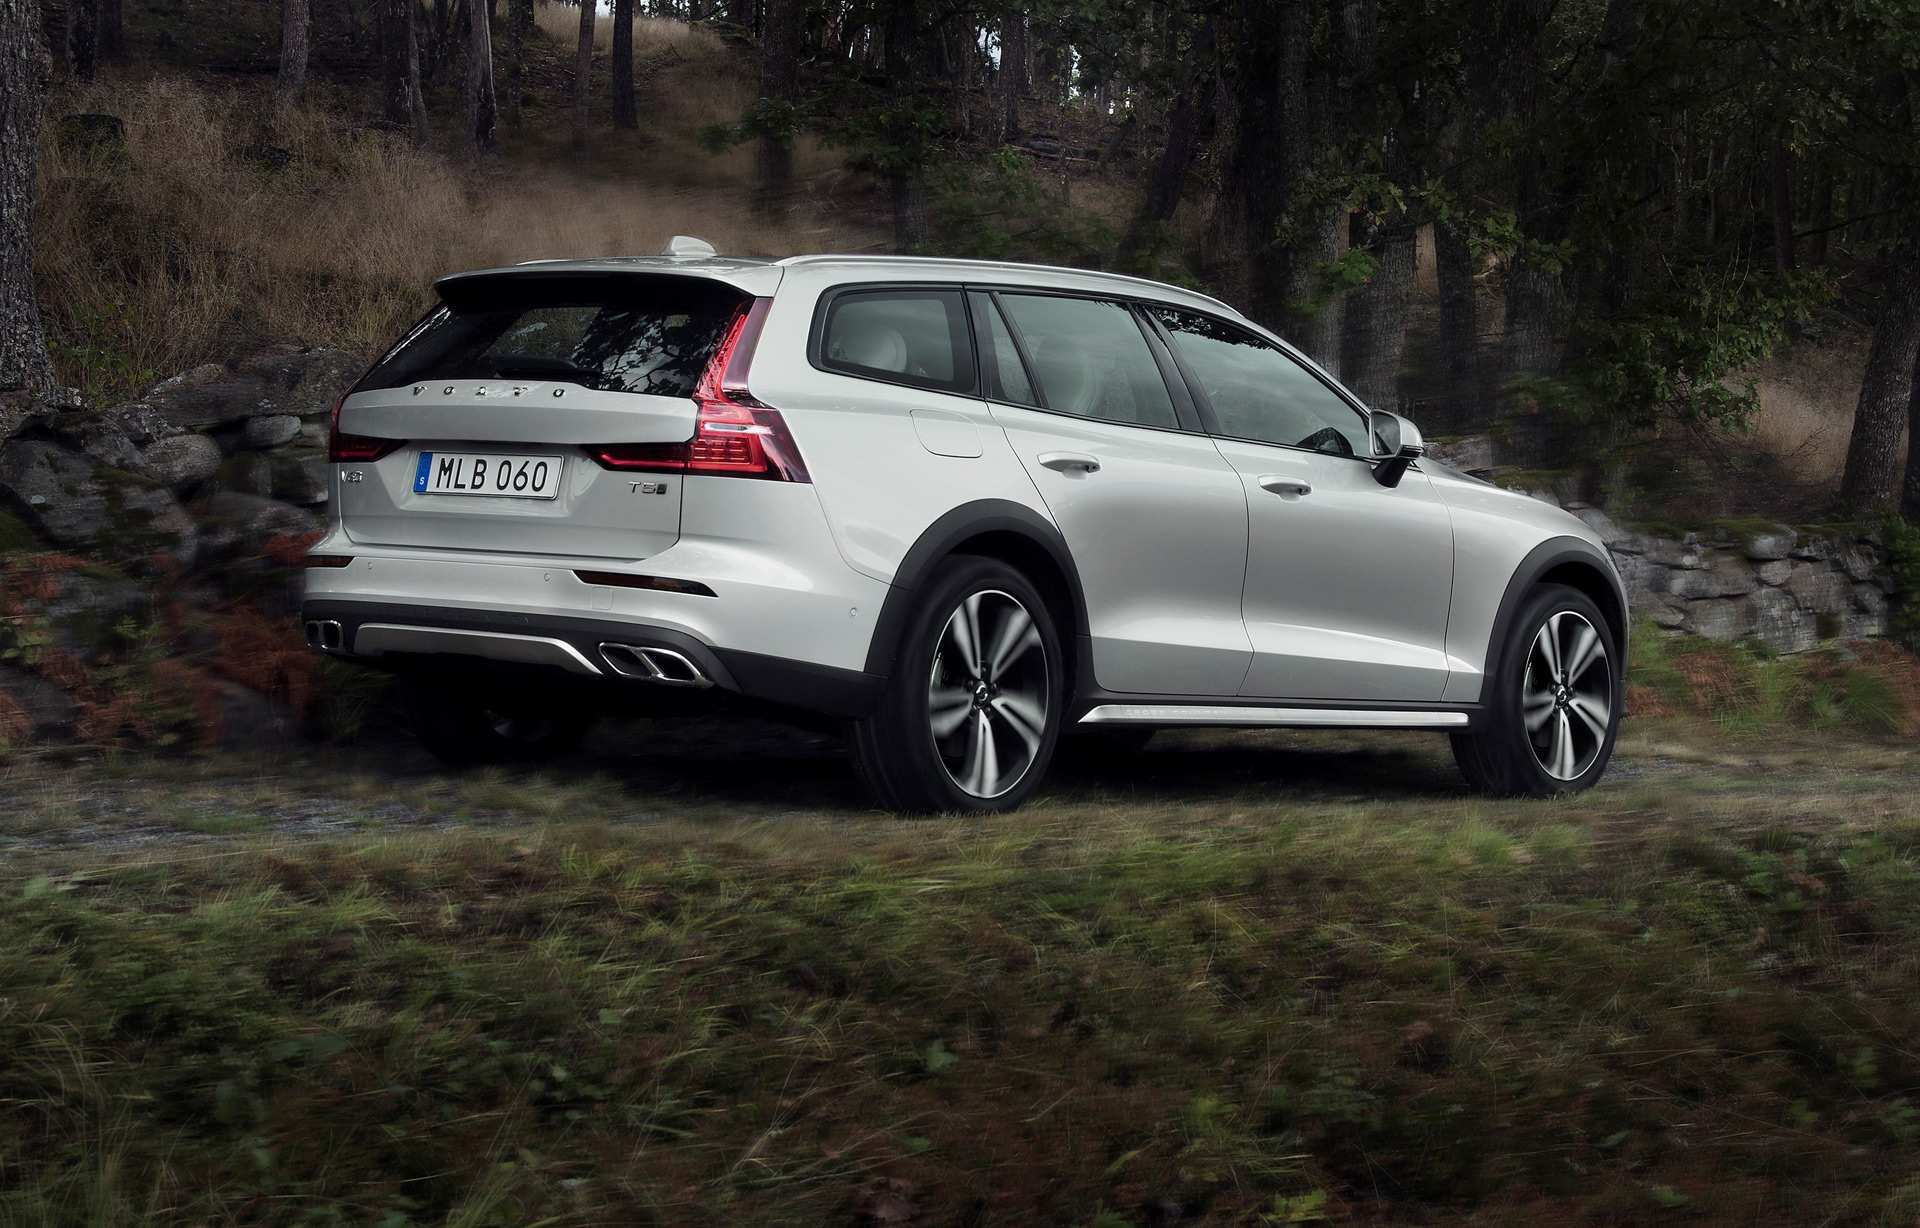 69 All New 2020 Volvo V60 Cross Country Spesification